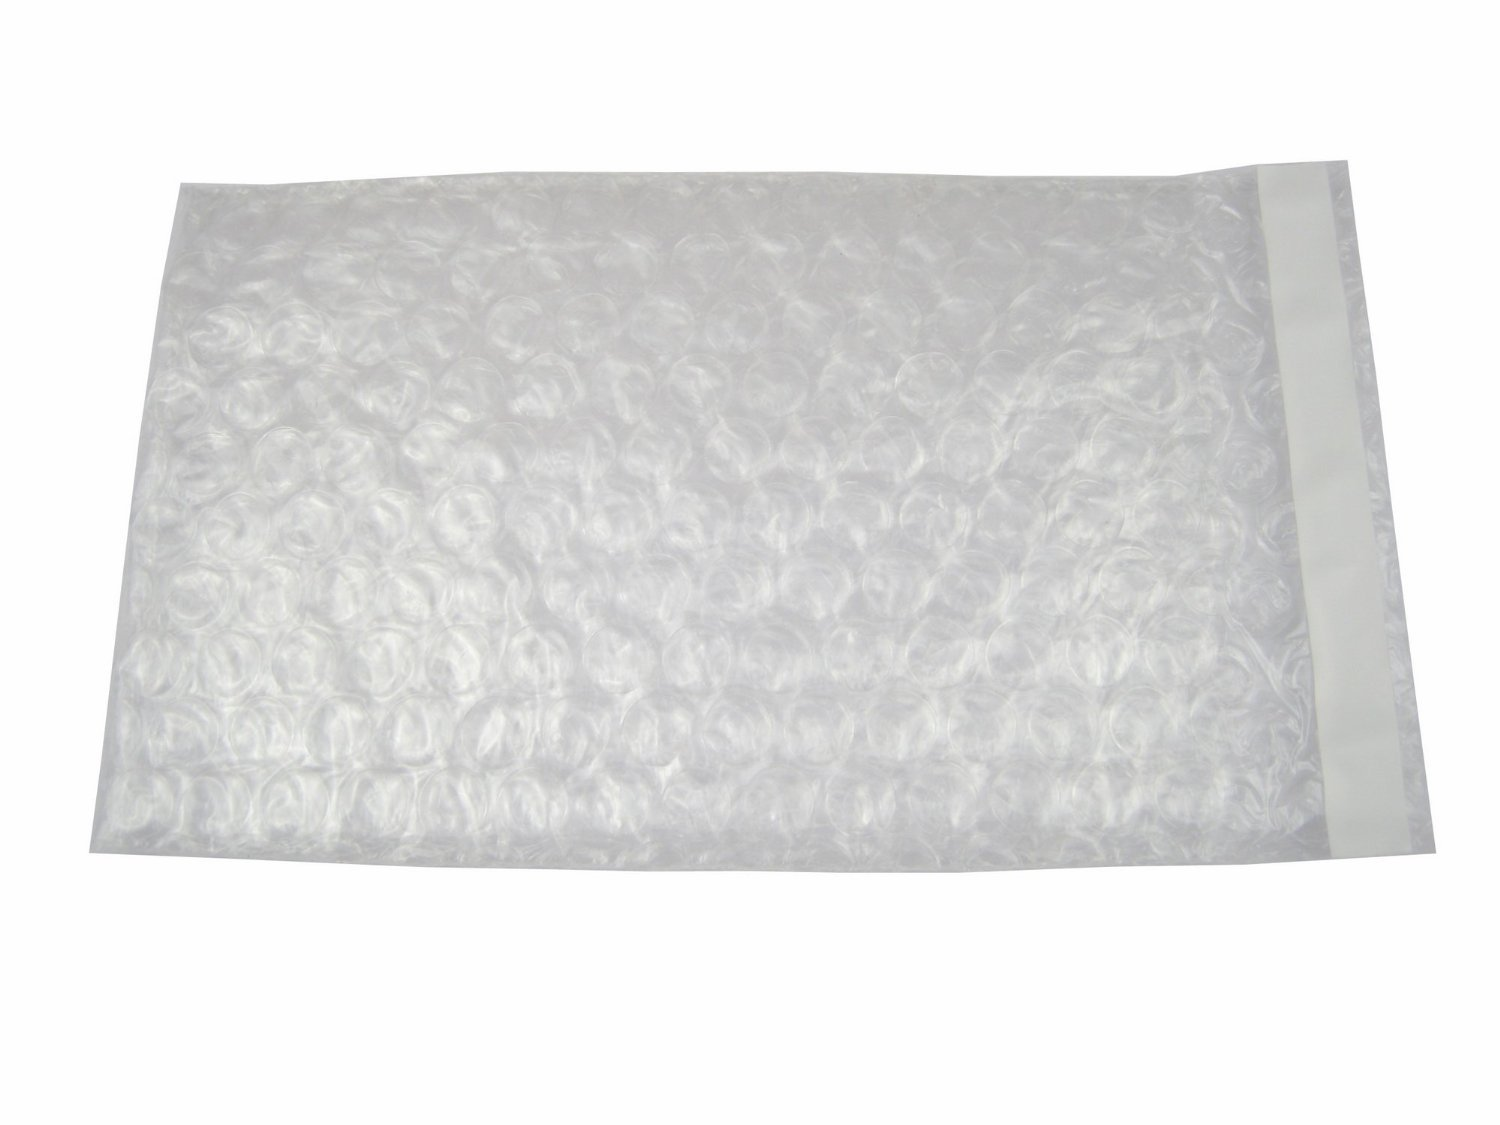 600 Pcs 8X15.5 SELF-SEAL CLEAR BUBBLE OUT POUCHES BAGS 8'' X 15.5'' 1'' LIP and Tape Seal BUBBLE WRAP